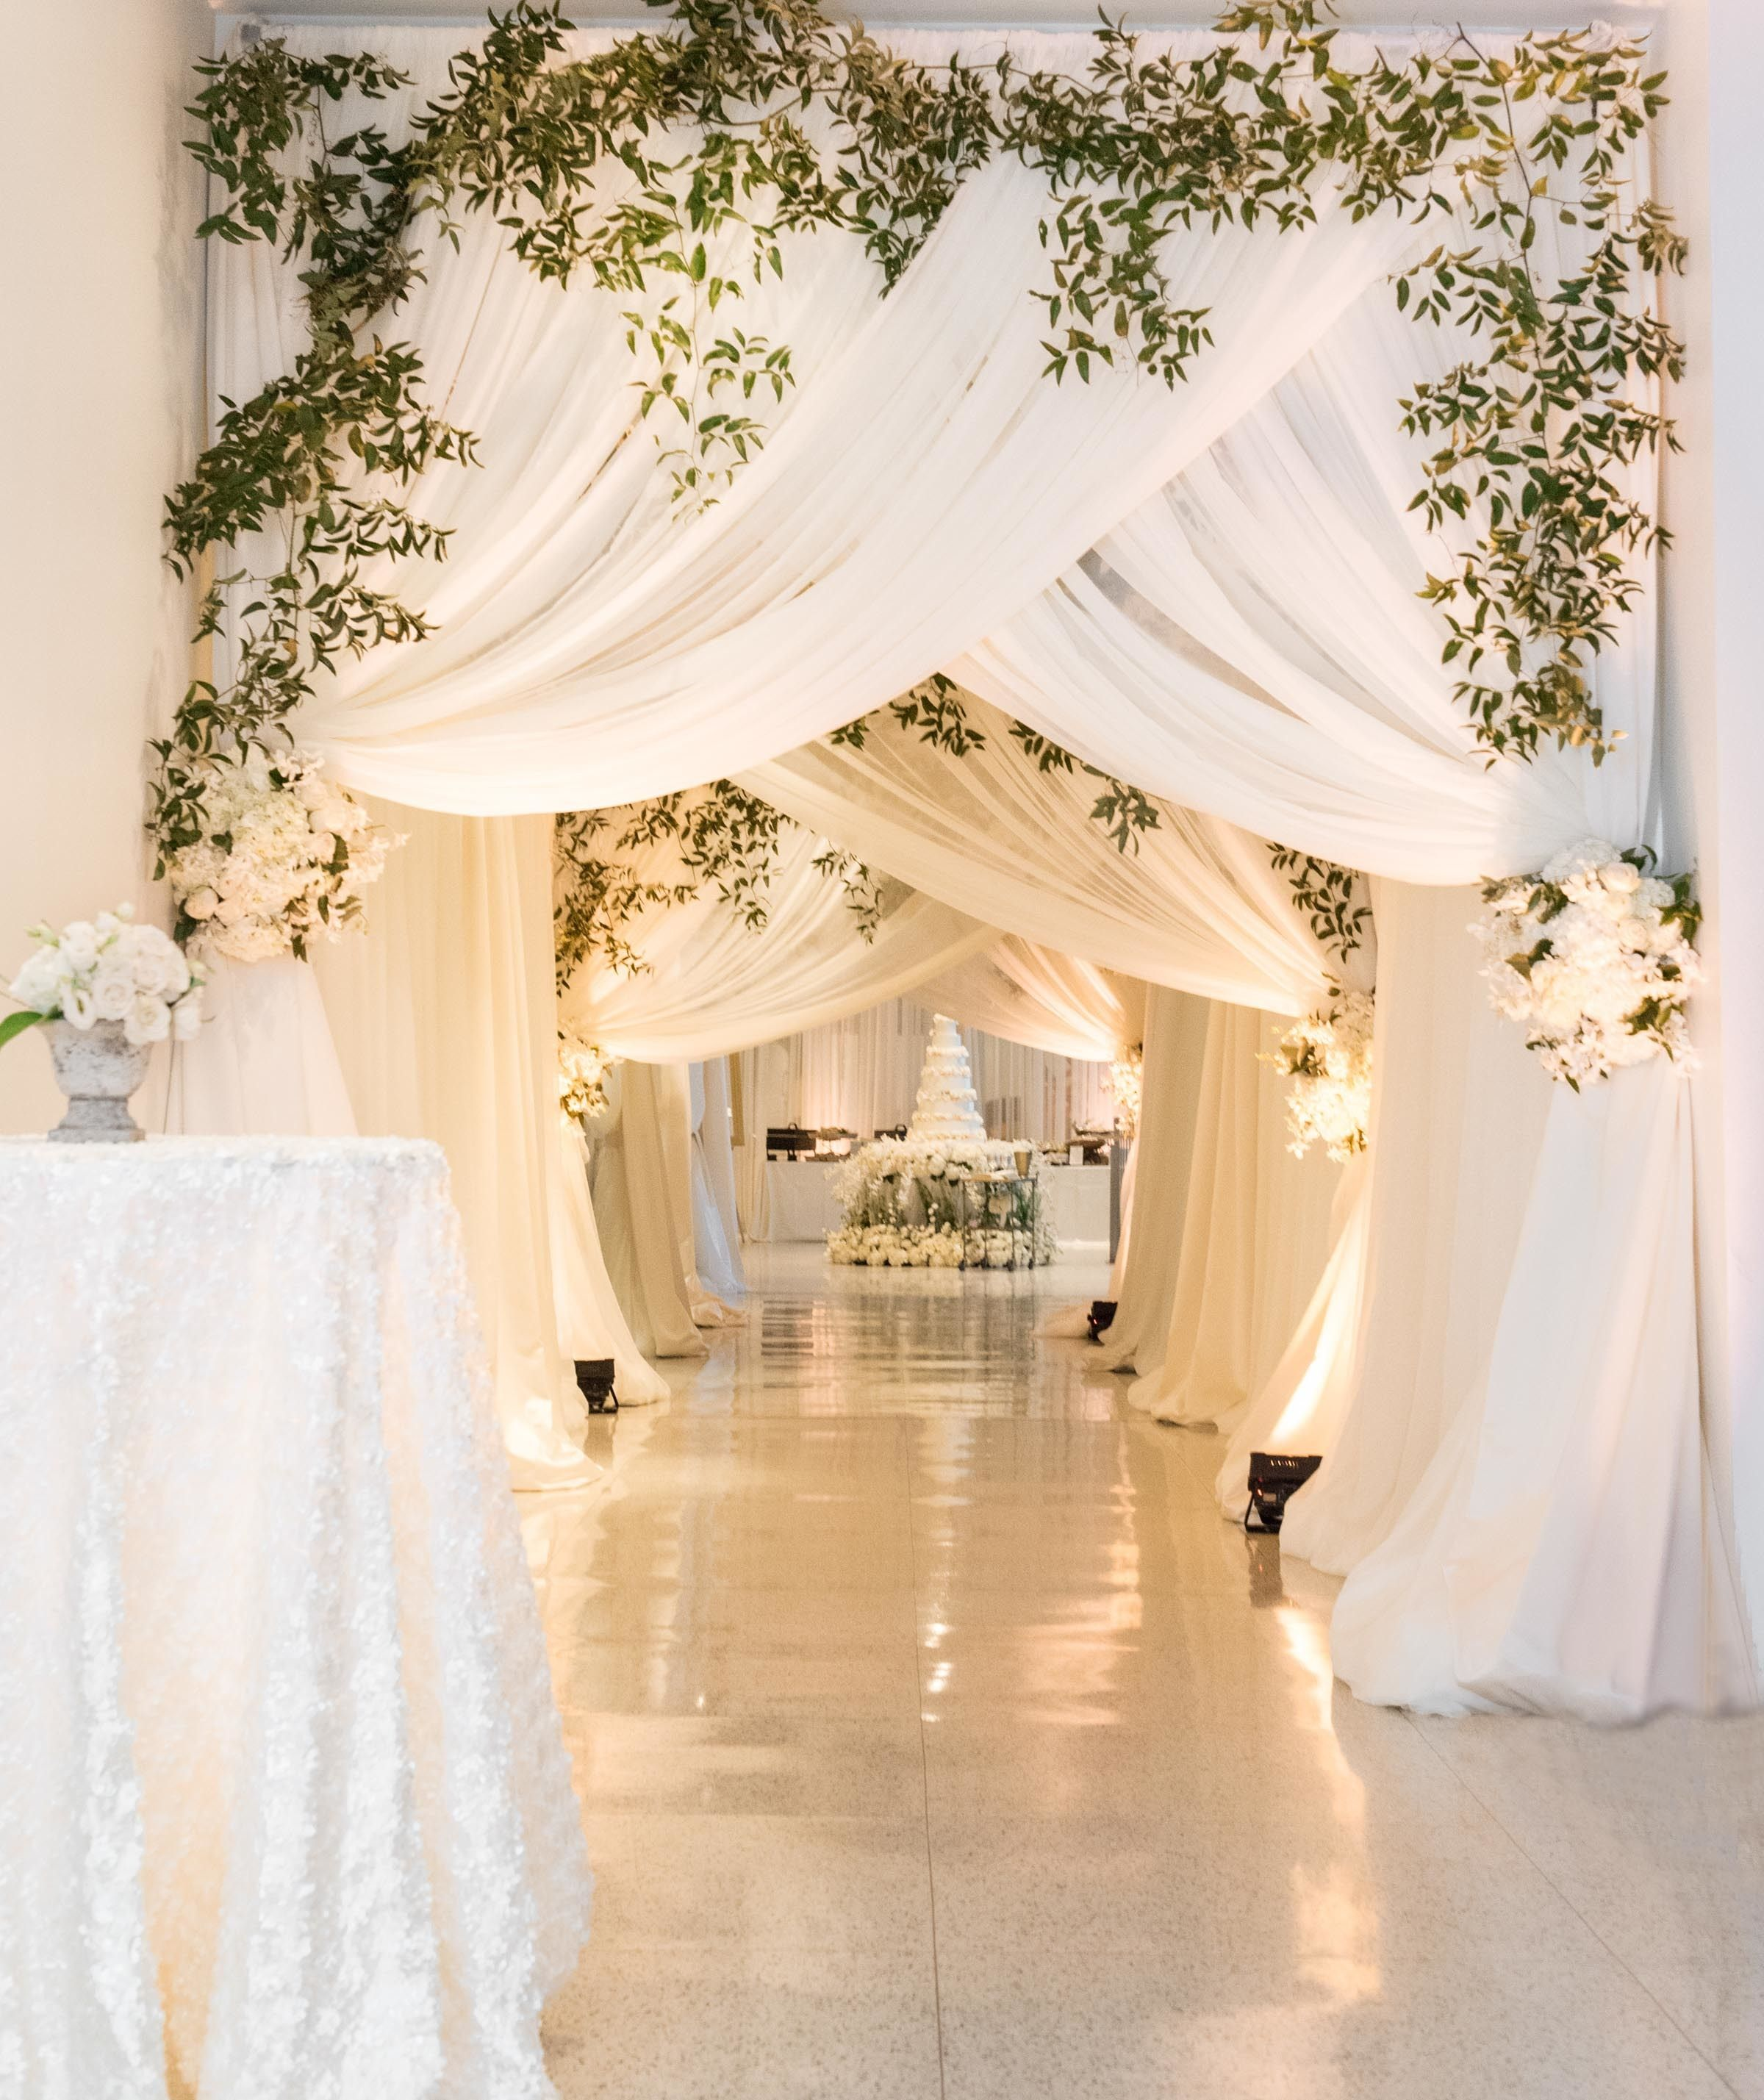 Guests were met with this beautiful sight once they made their way into the reception space